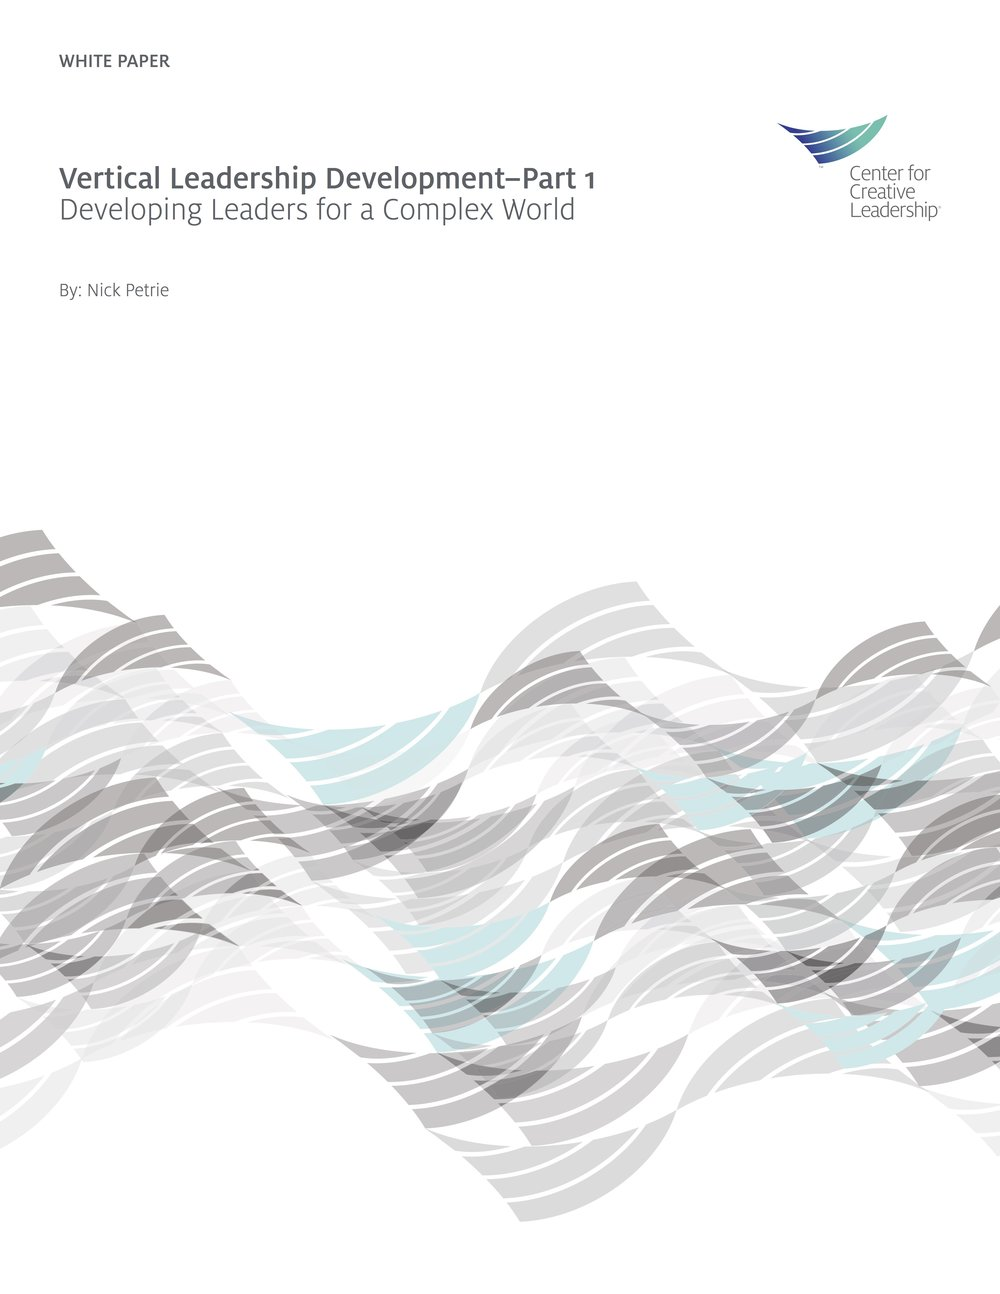 Vertical Leadership Development 1